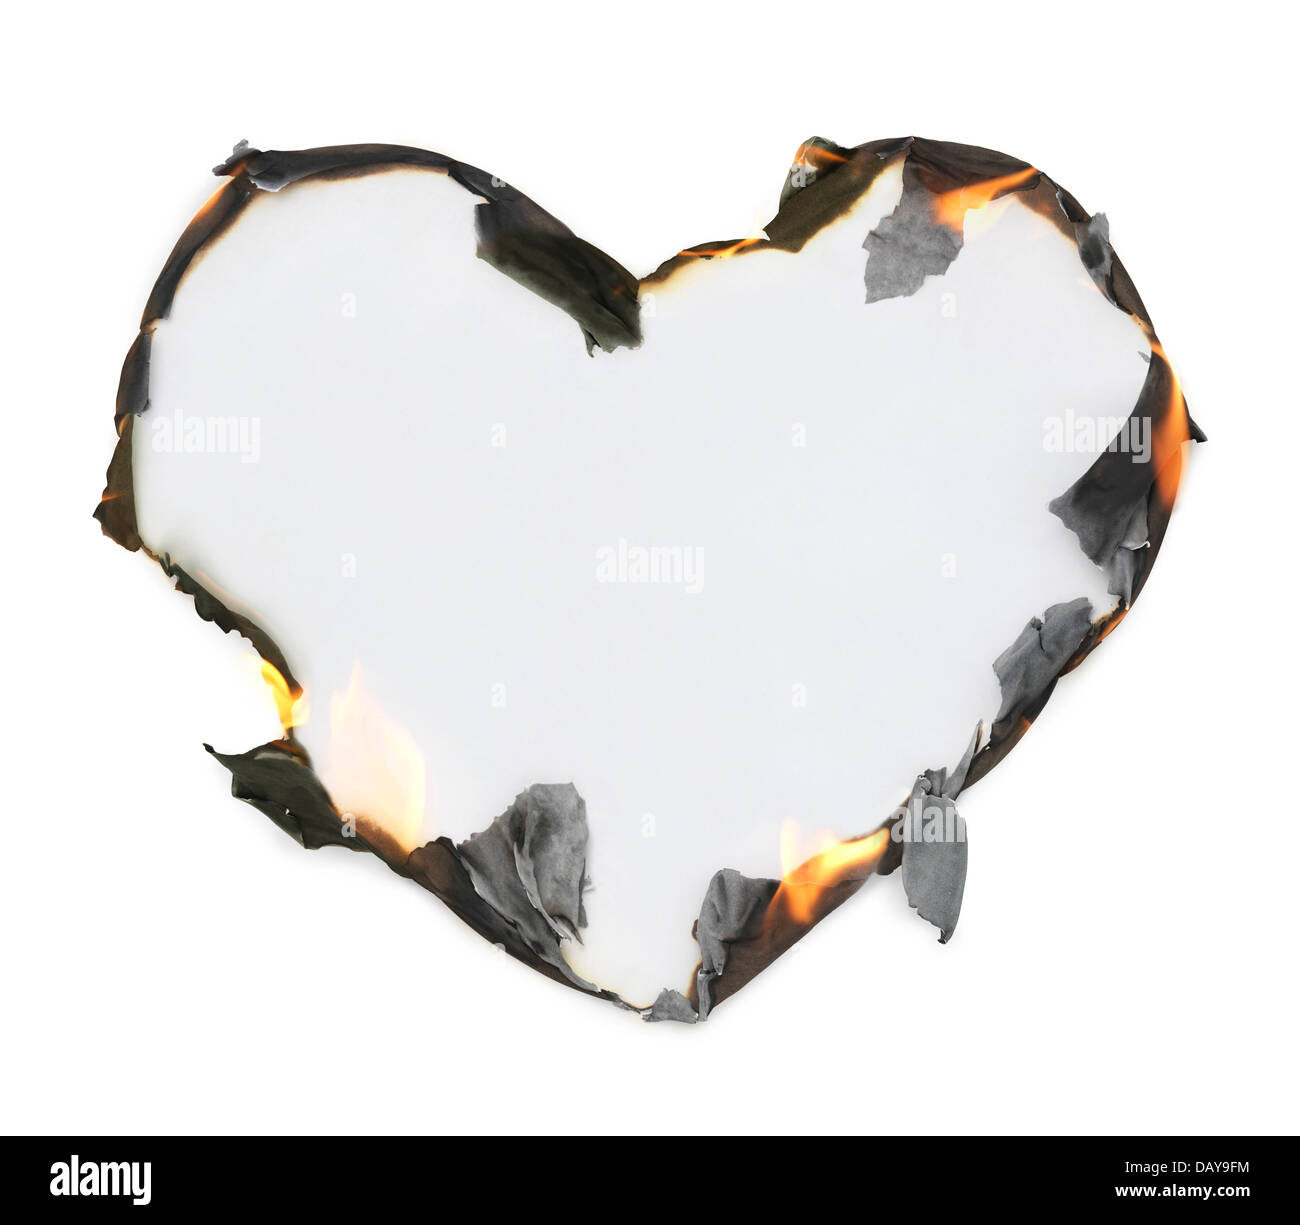 Blank heart shaped paper with burning edges, artistic conceptual frame isolated on white background with clipping - Stock Image